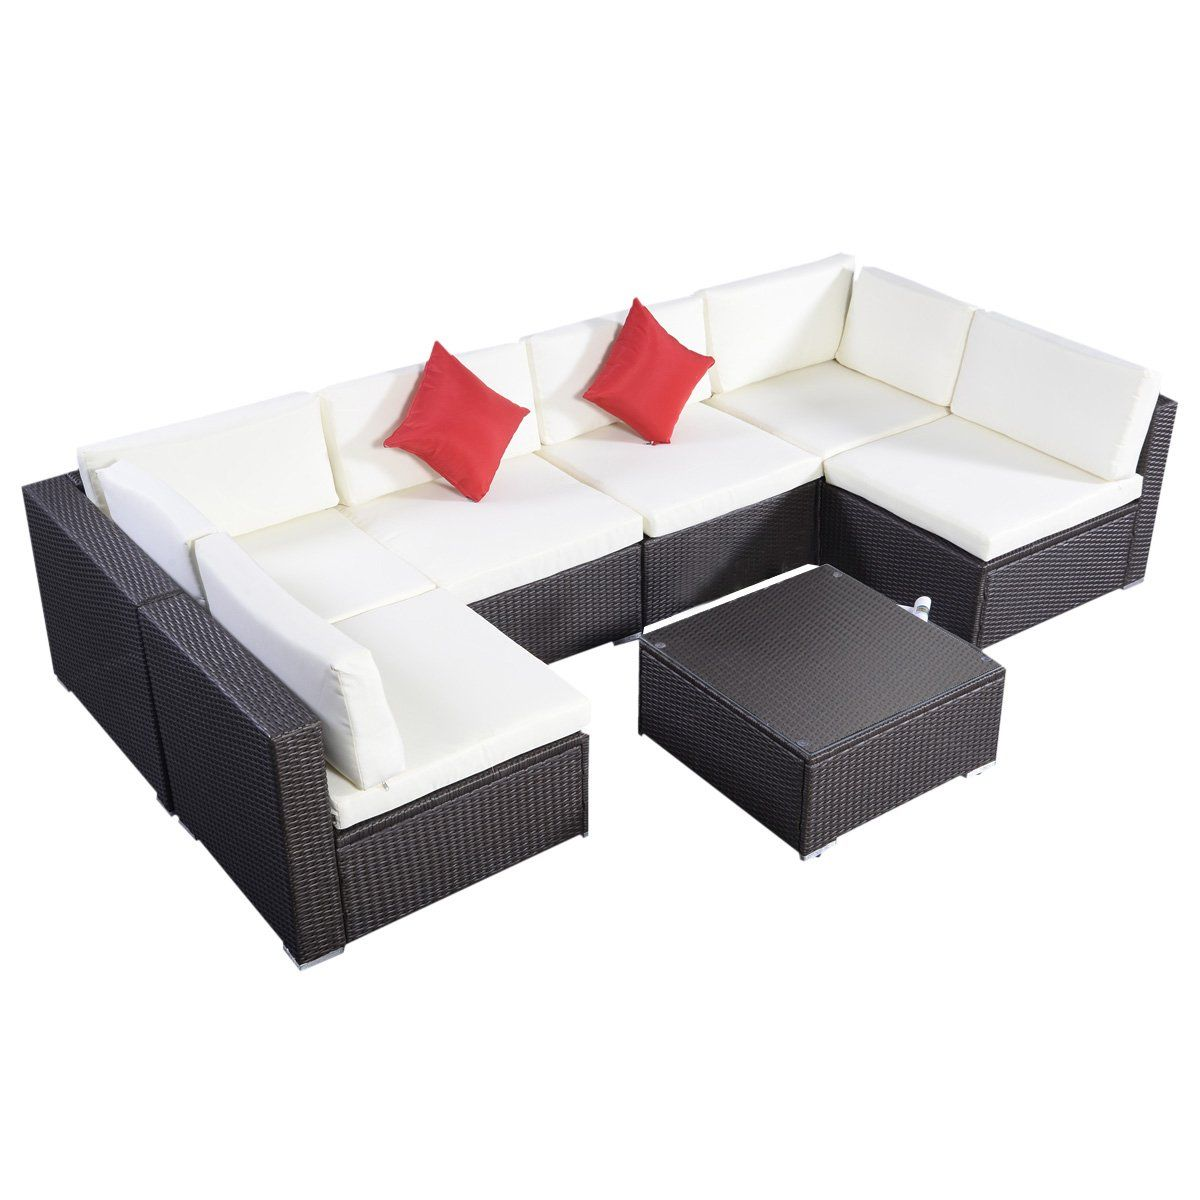 tangkula 7 pcs outdoor patio wicker furniture sets rattan sofas